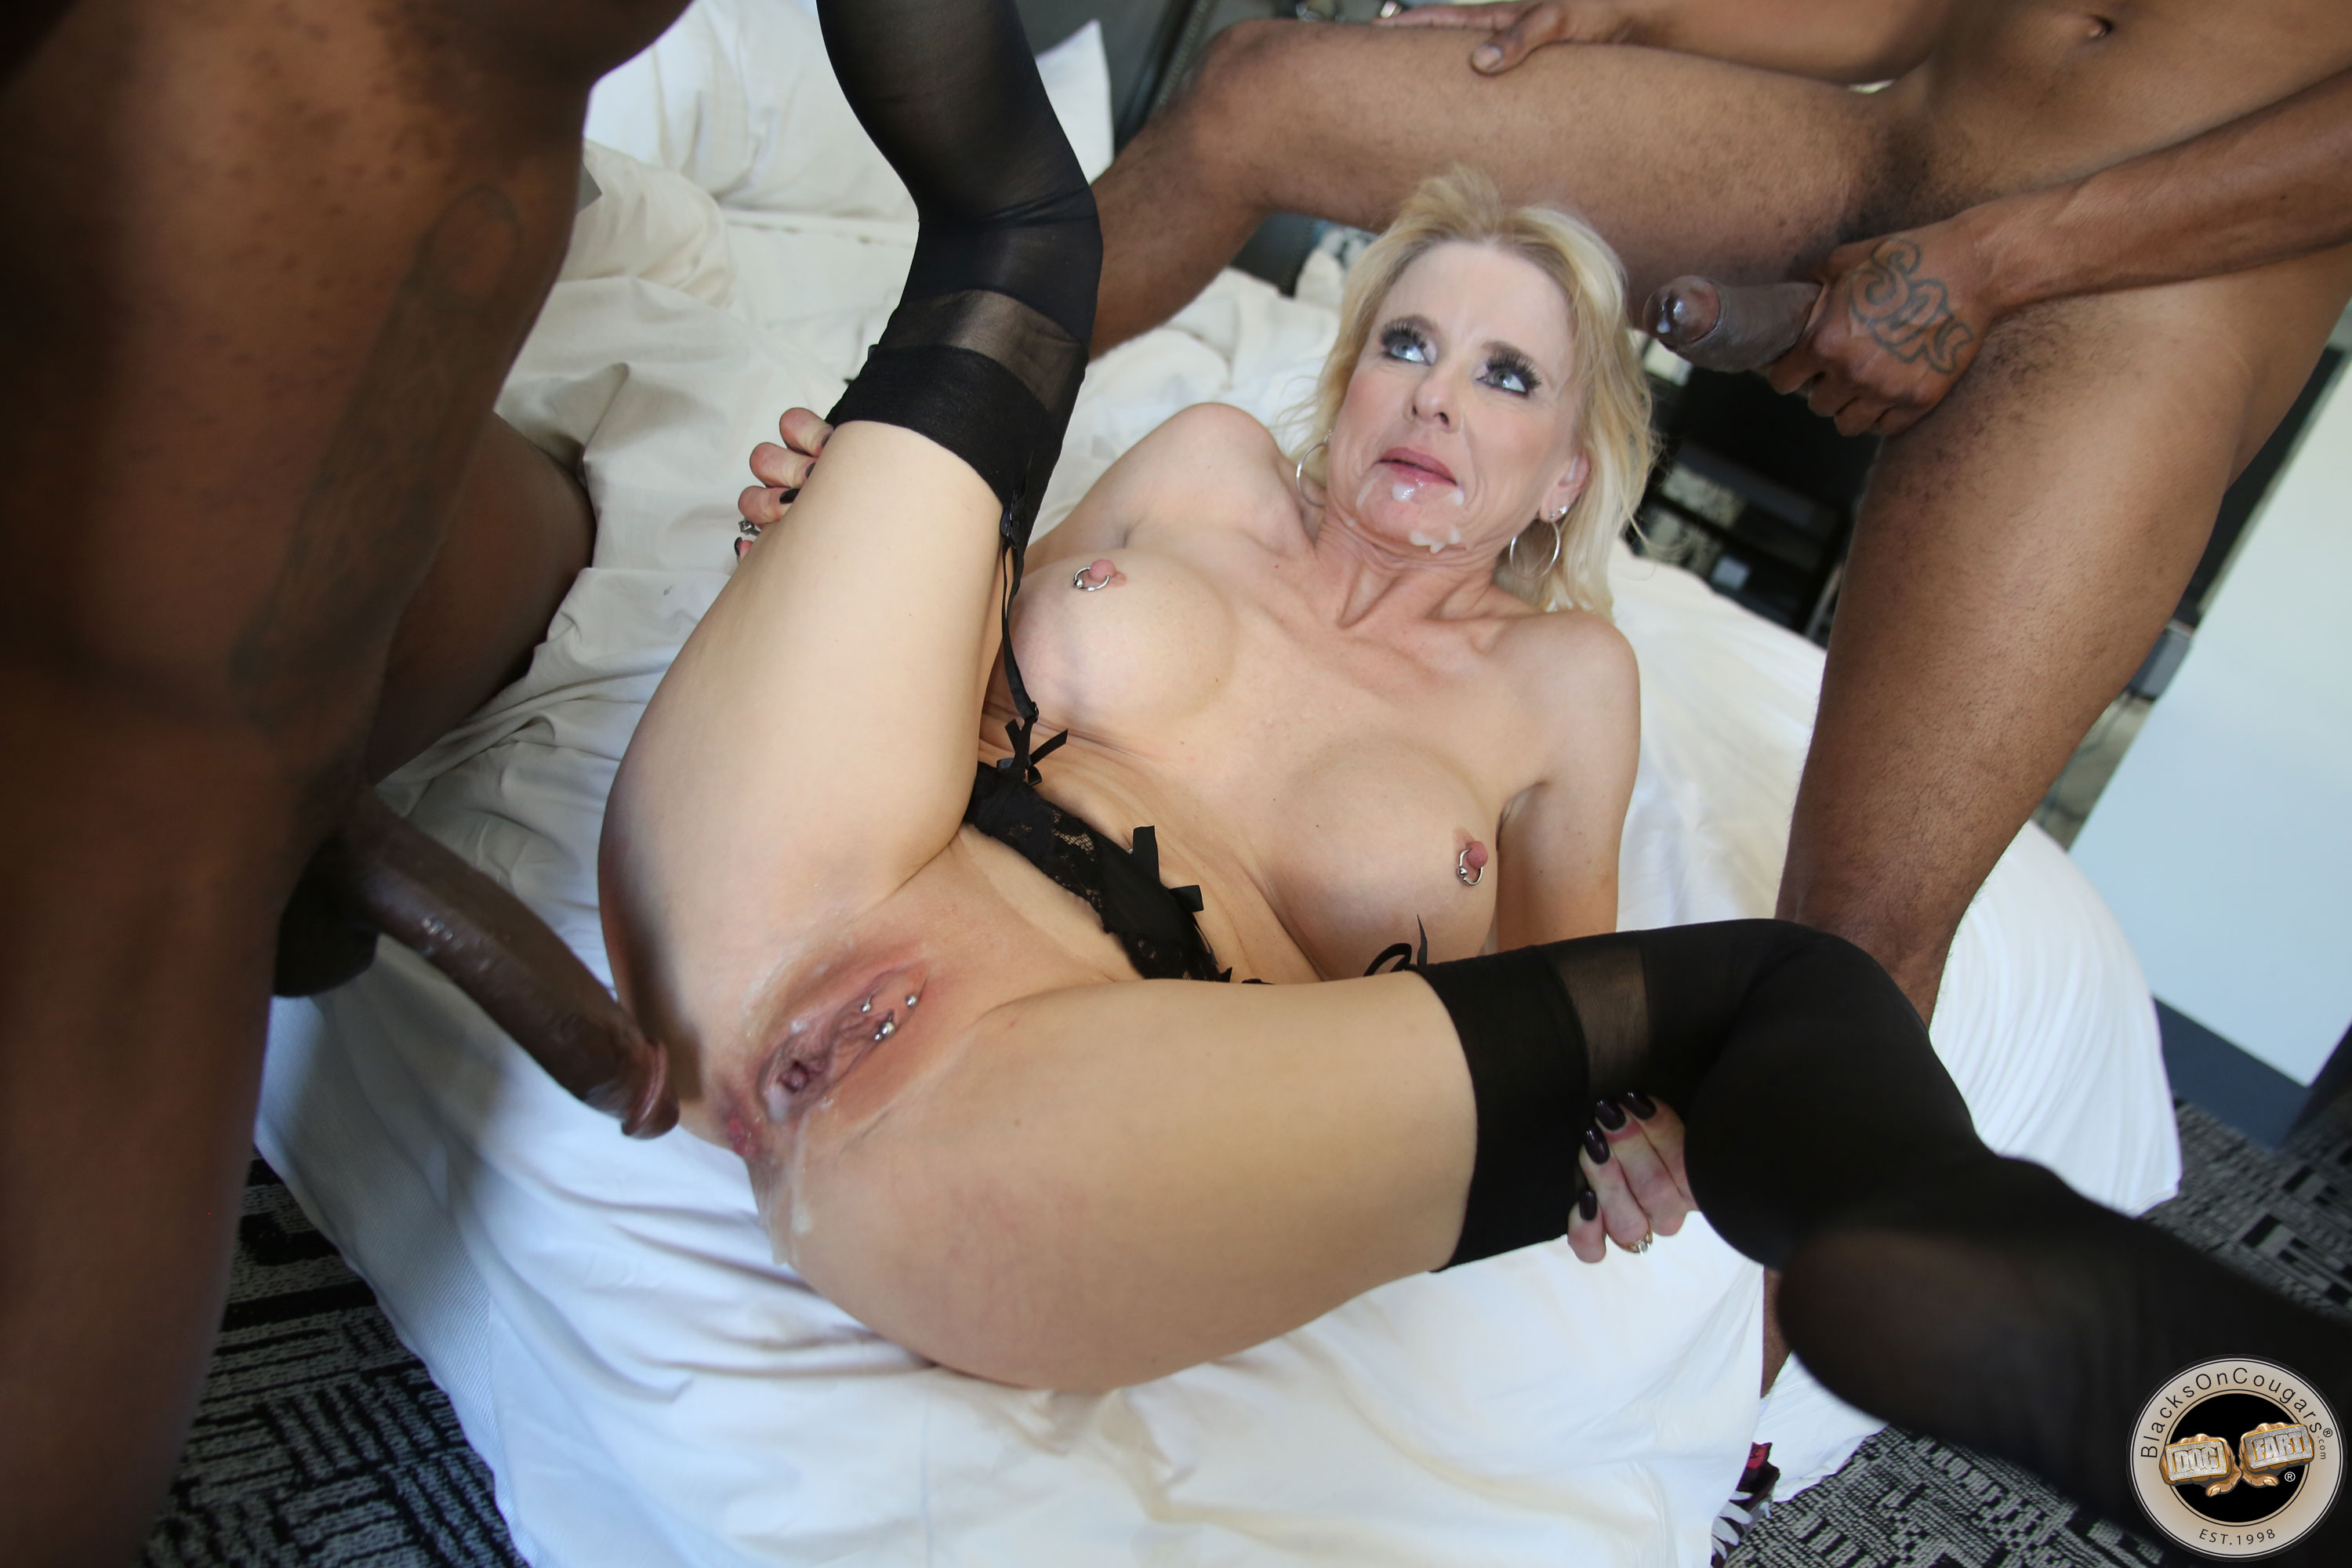 Over 50 cougar fucks some young guy 6